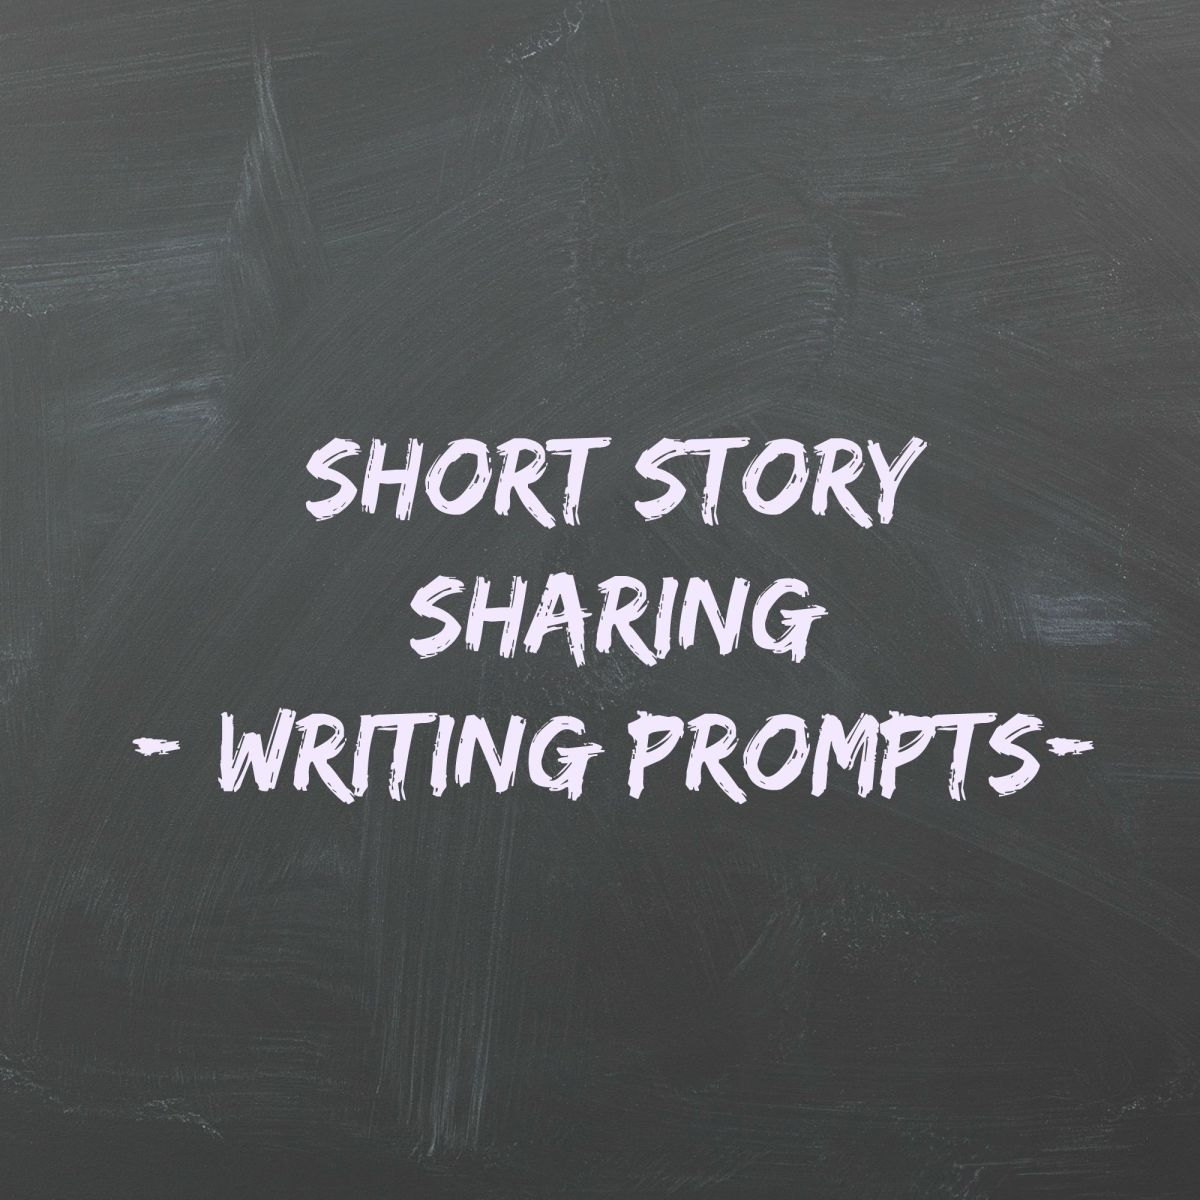 Short Story Sharing - writing prompts